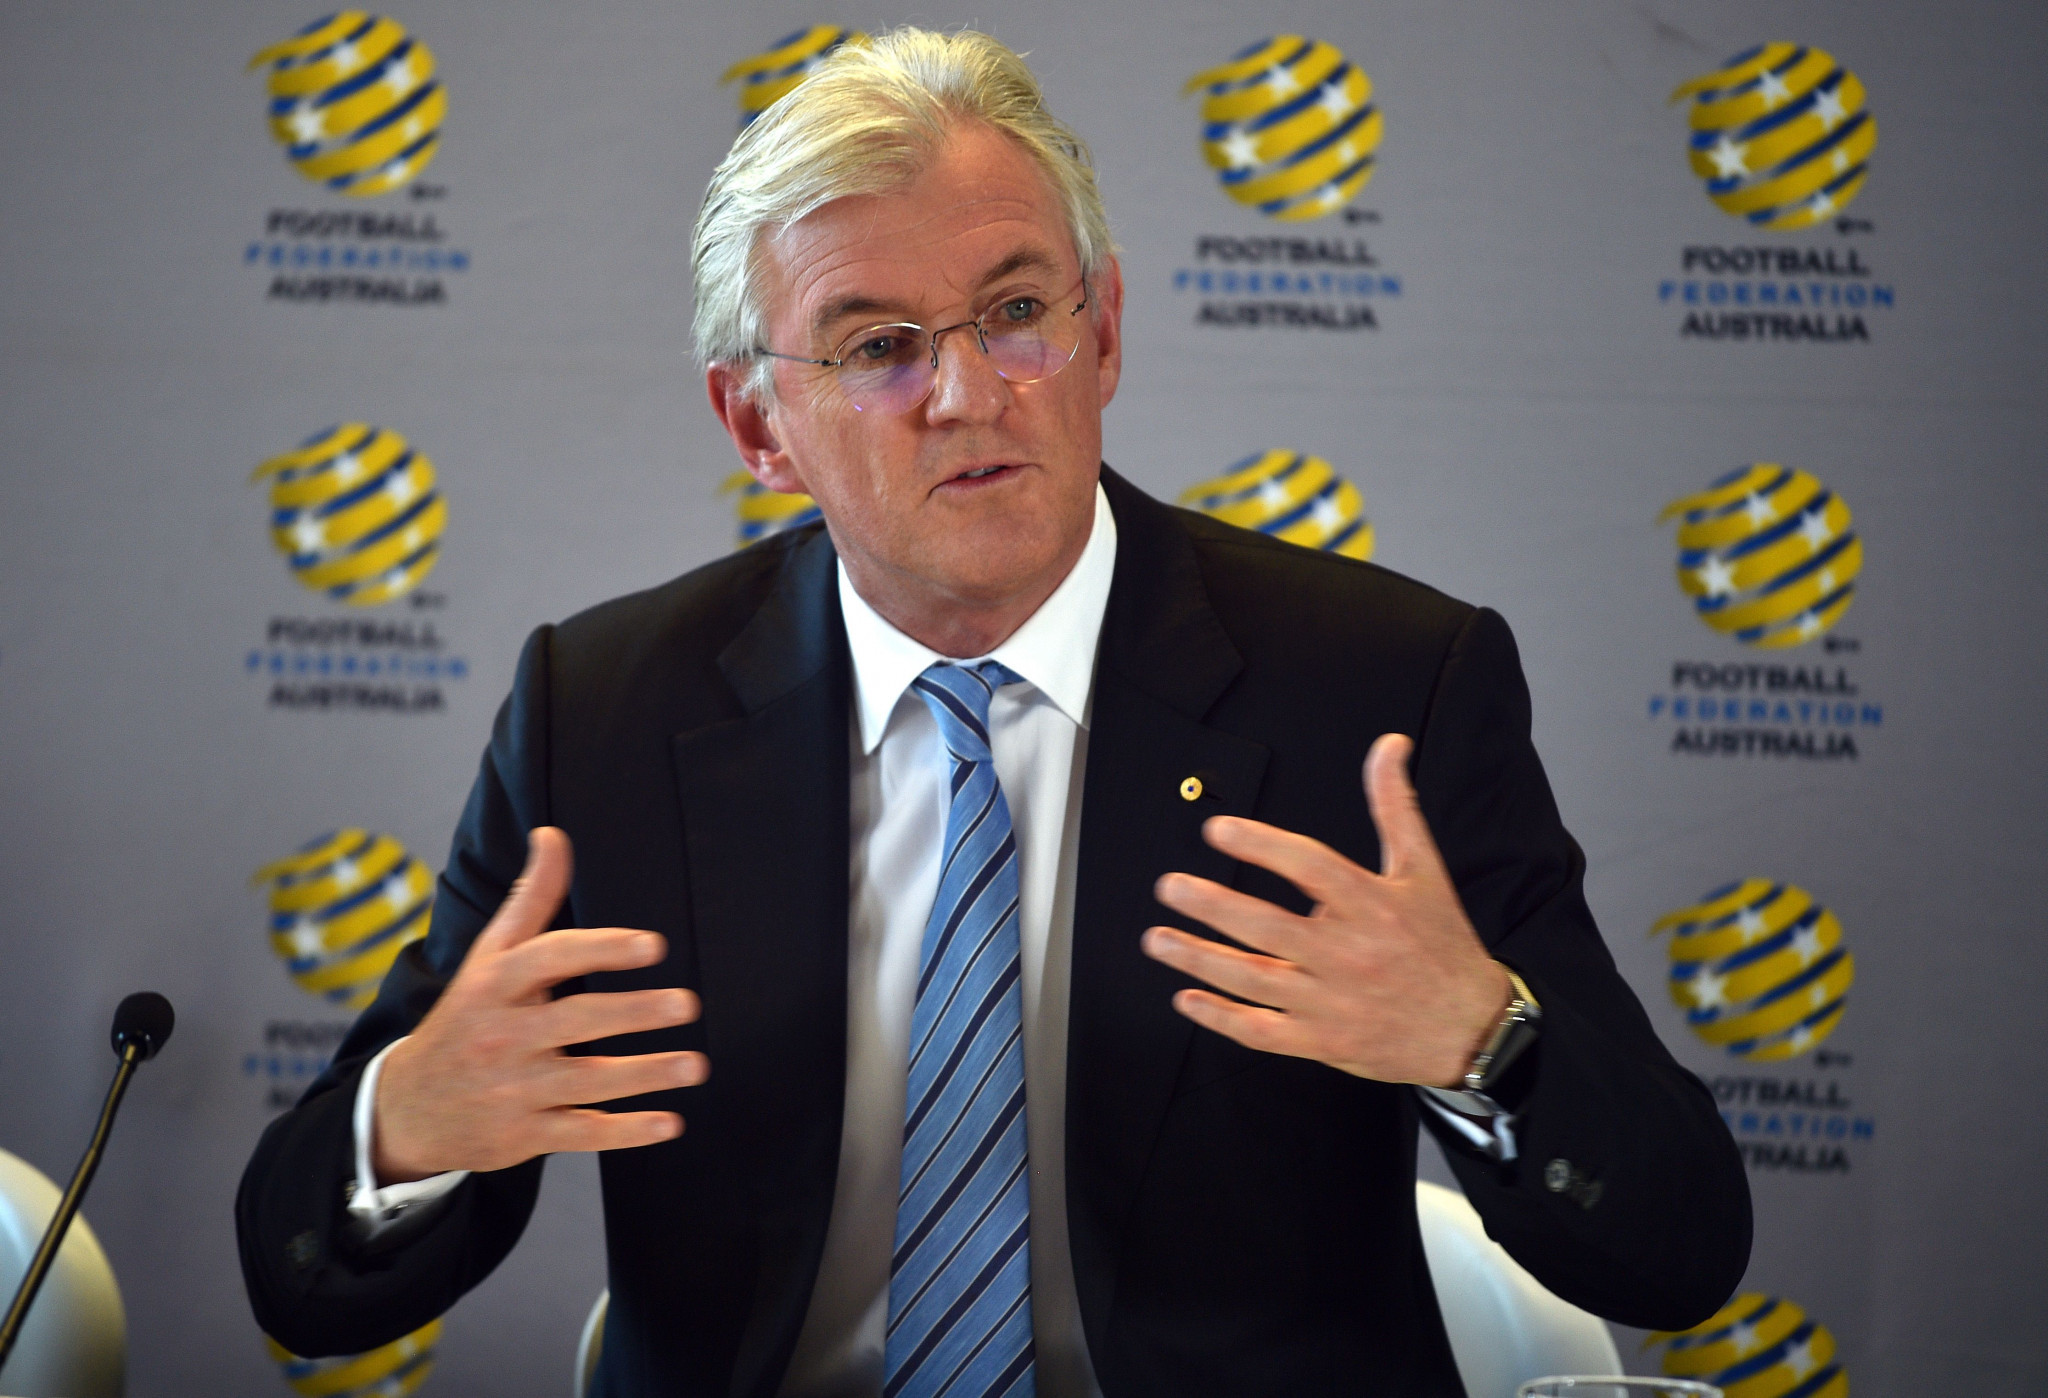 Football Federation Australia will welcome FIFA and AFC officials next week ©Getty Images